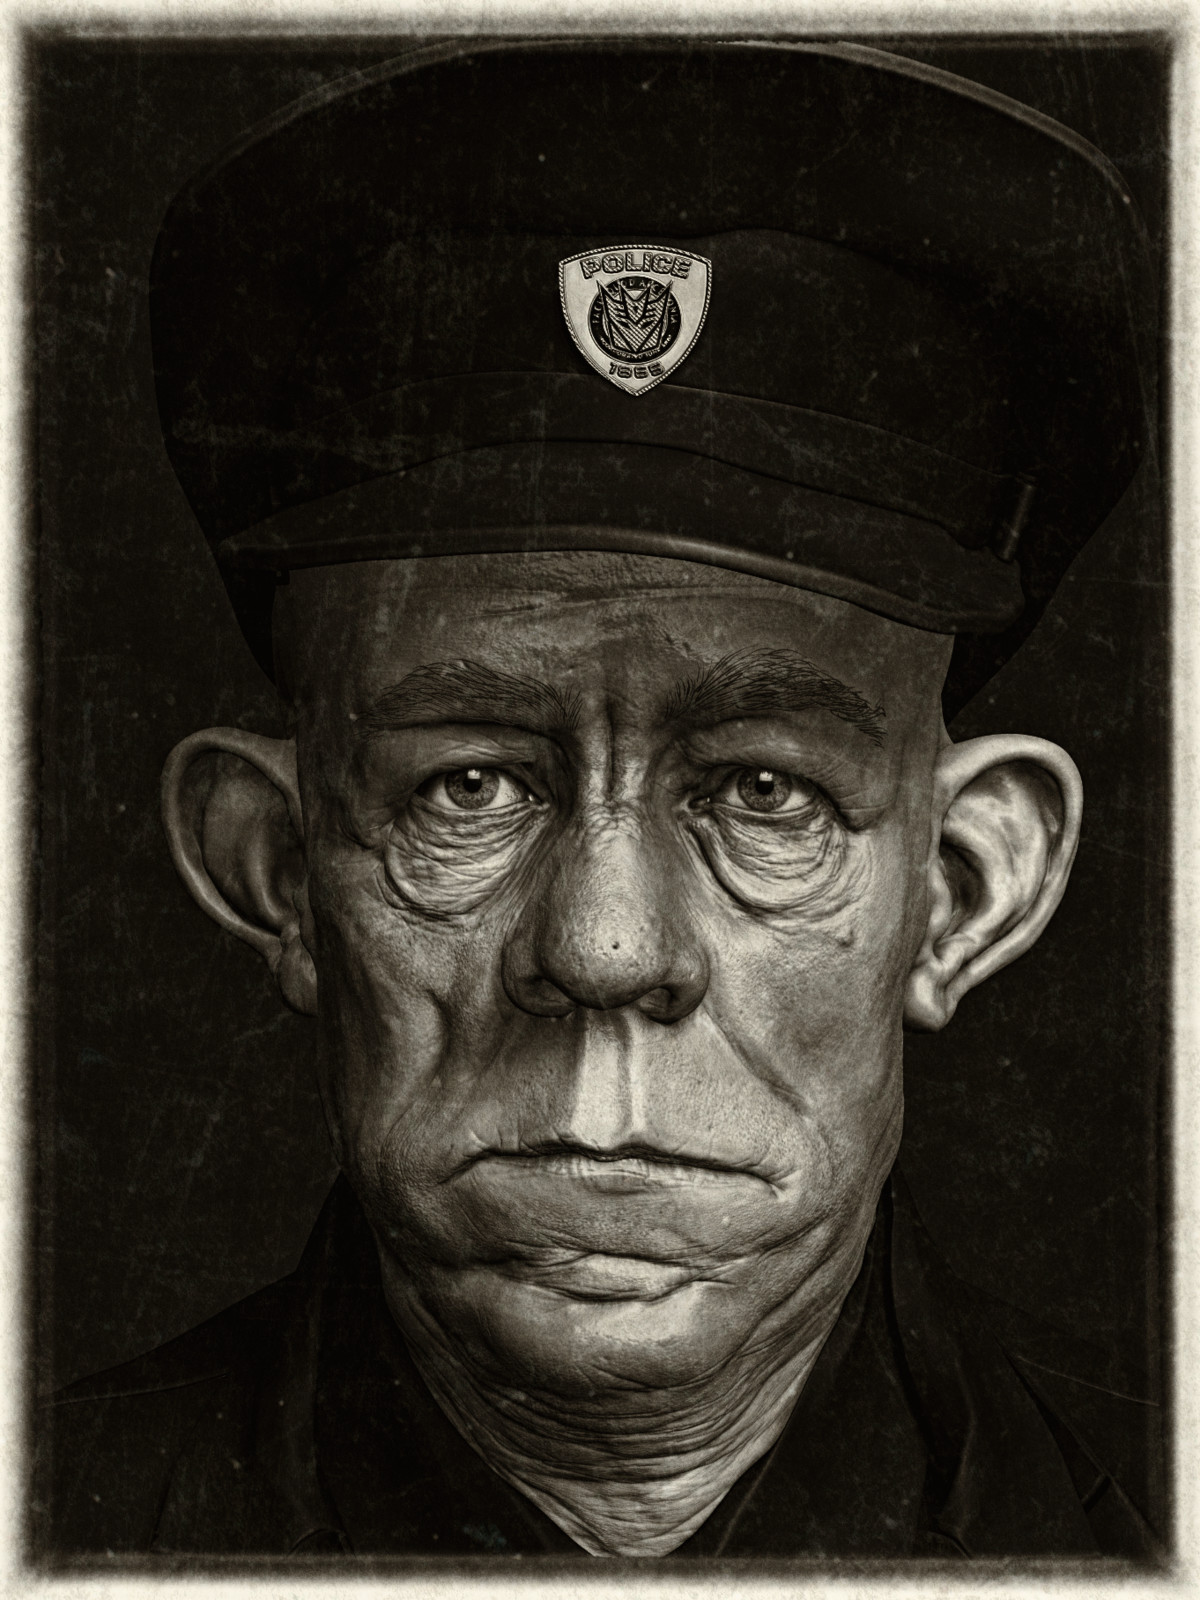 WIP 3D Sculpt of Sergeant de Bruin by Roger Ballen, 1992 (South Africa)